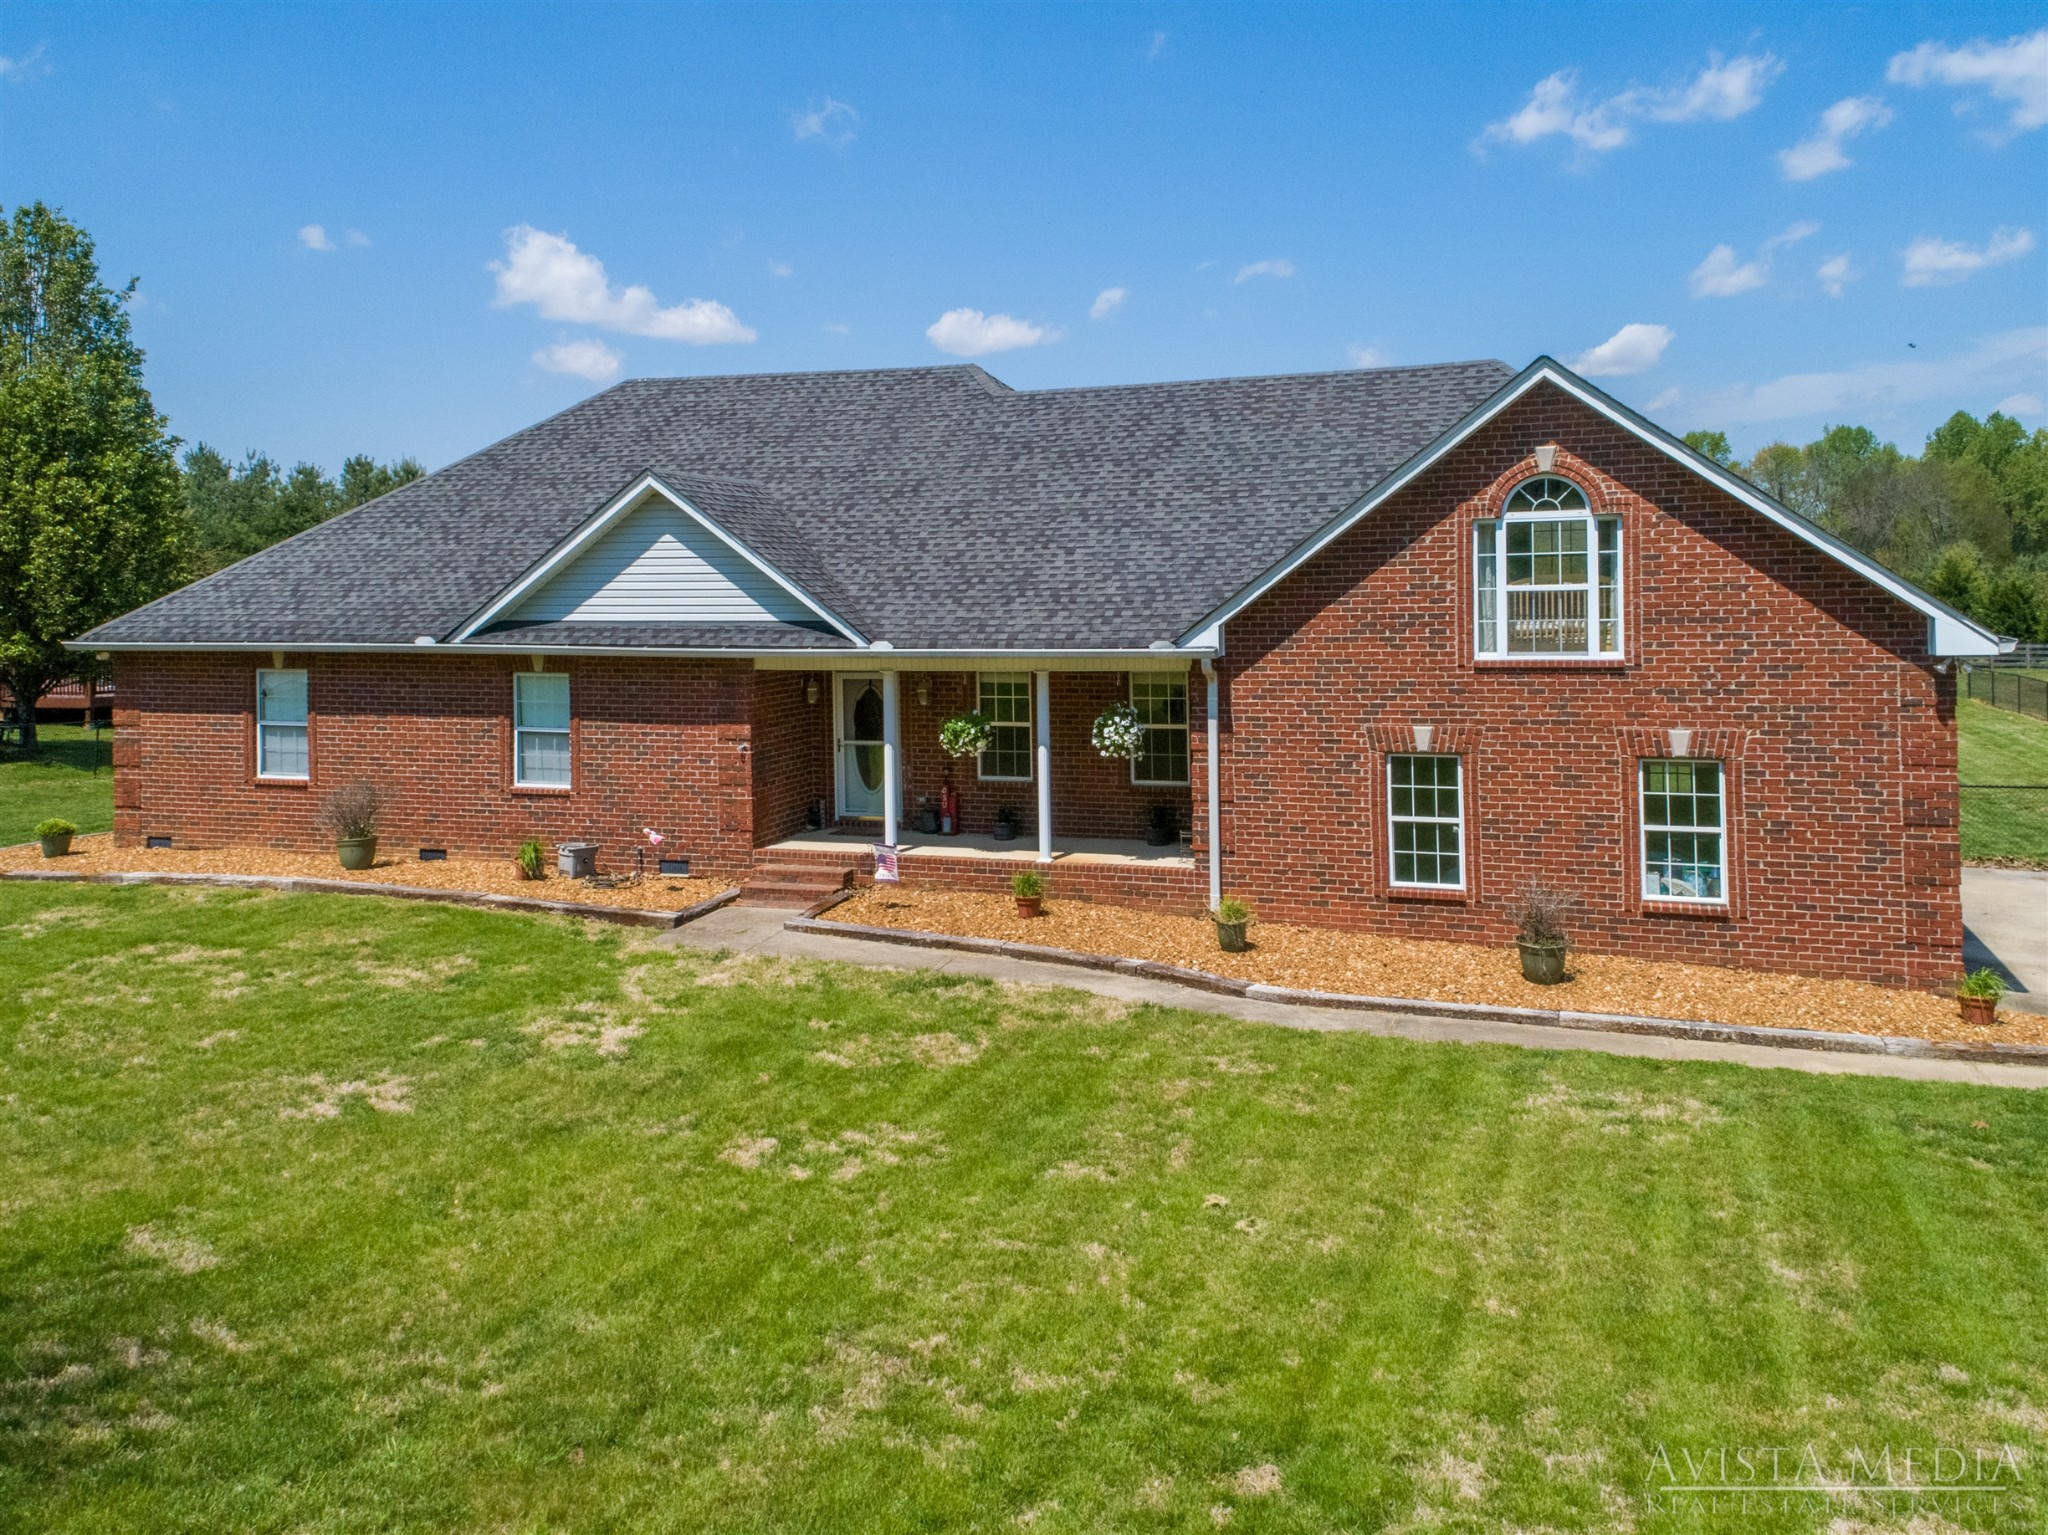 1009 Kennedy Ln, Cottontown, TN 37048 - Cottontown, TN real estate listing